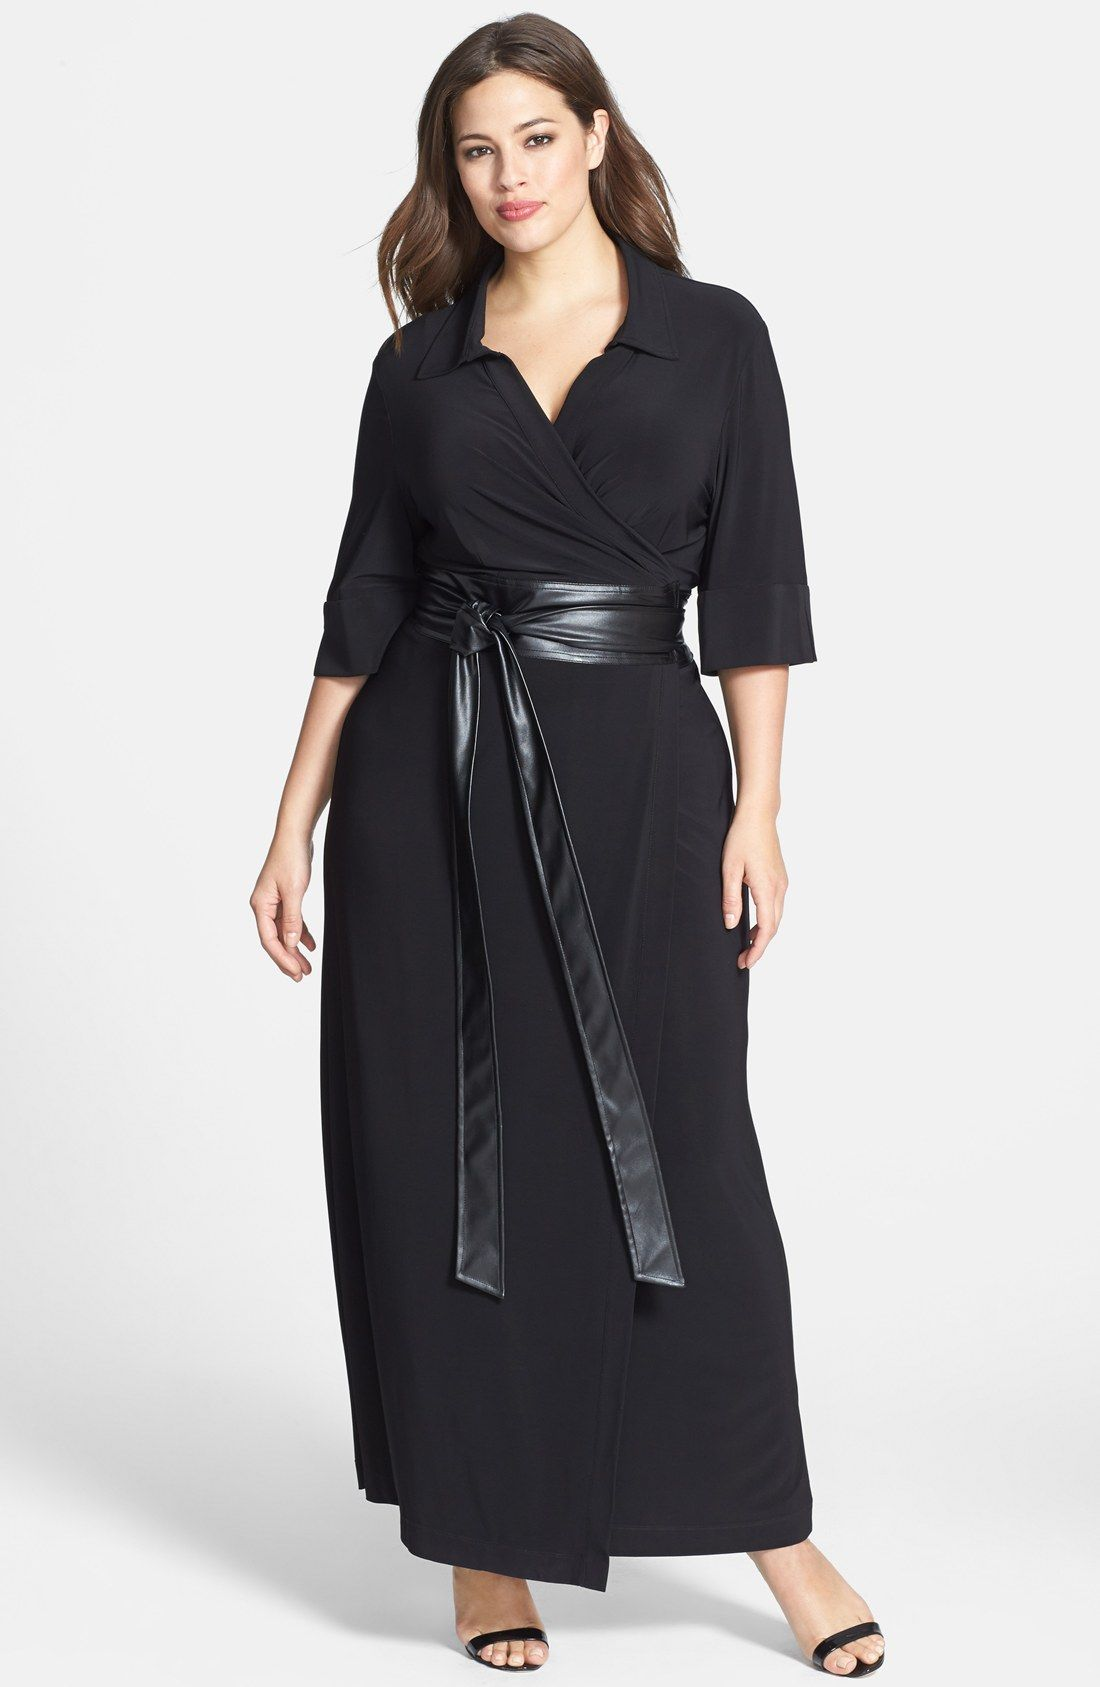 Taylor Dresses Faux Leather Belted Maxi Wrap Dress (Plus Size ...